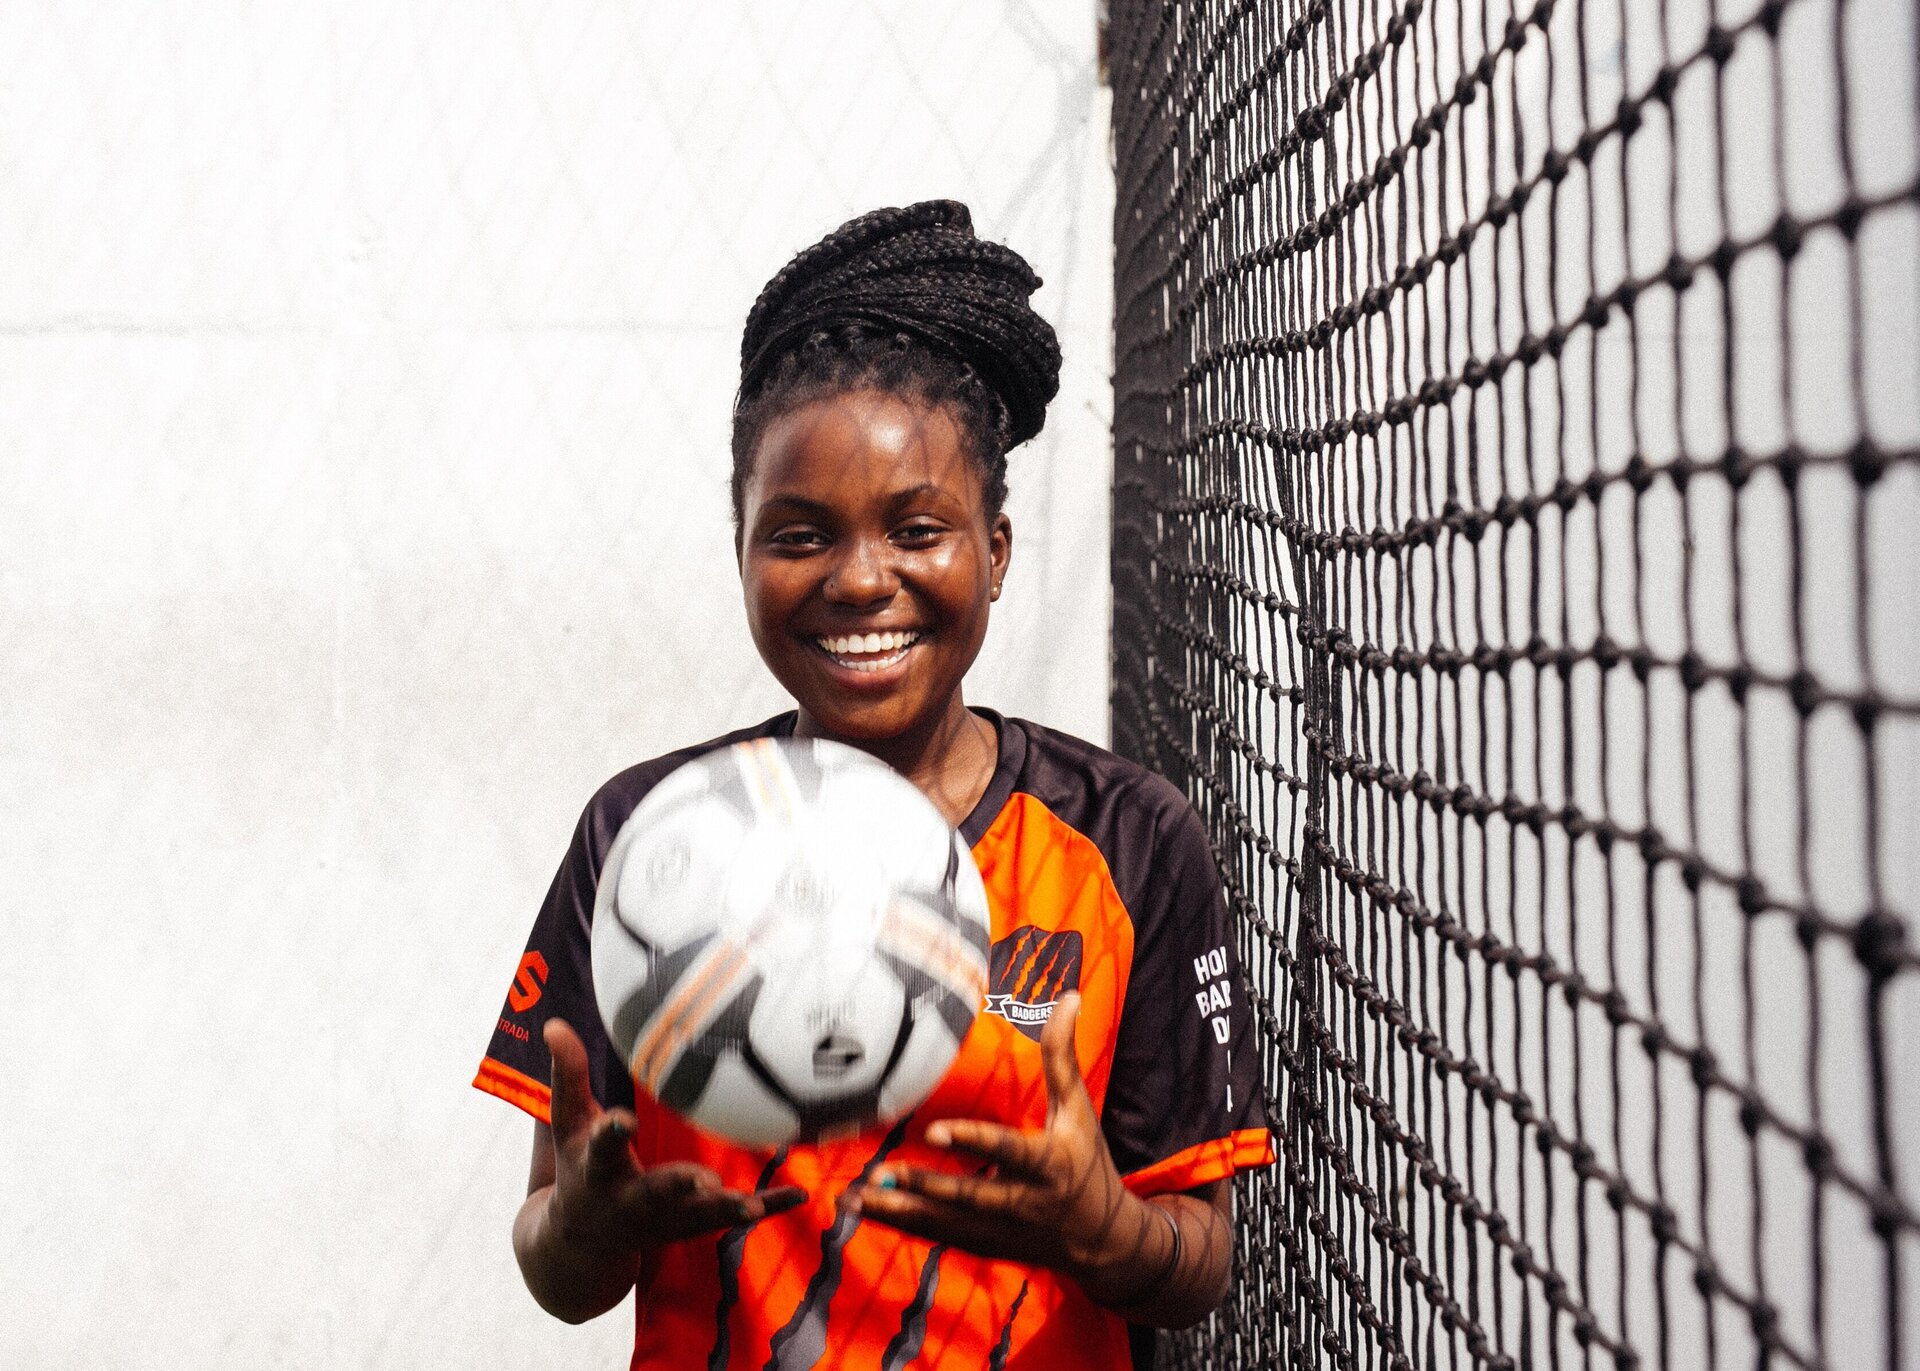 smiling-girl-in-black-and-orange-uniform-holding-soccer-ball-3886257